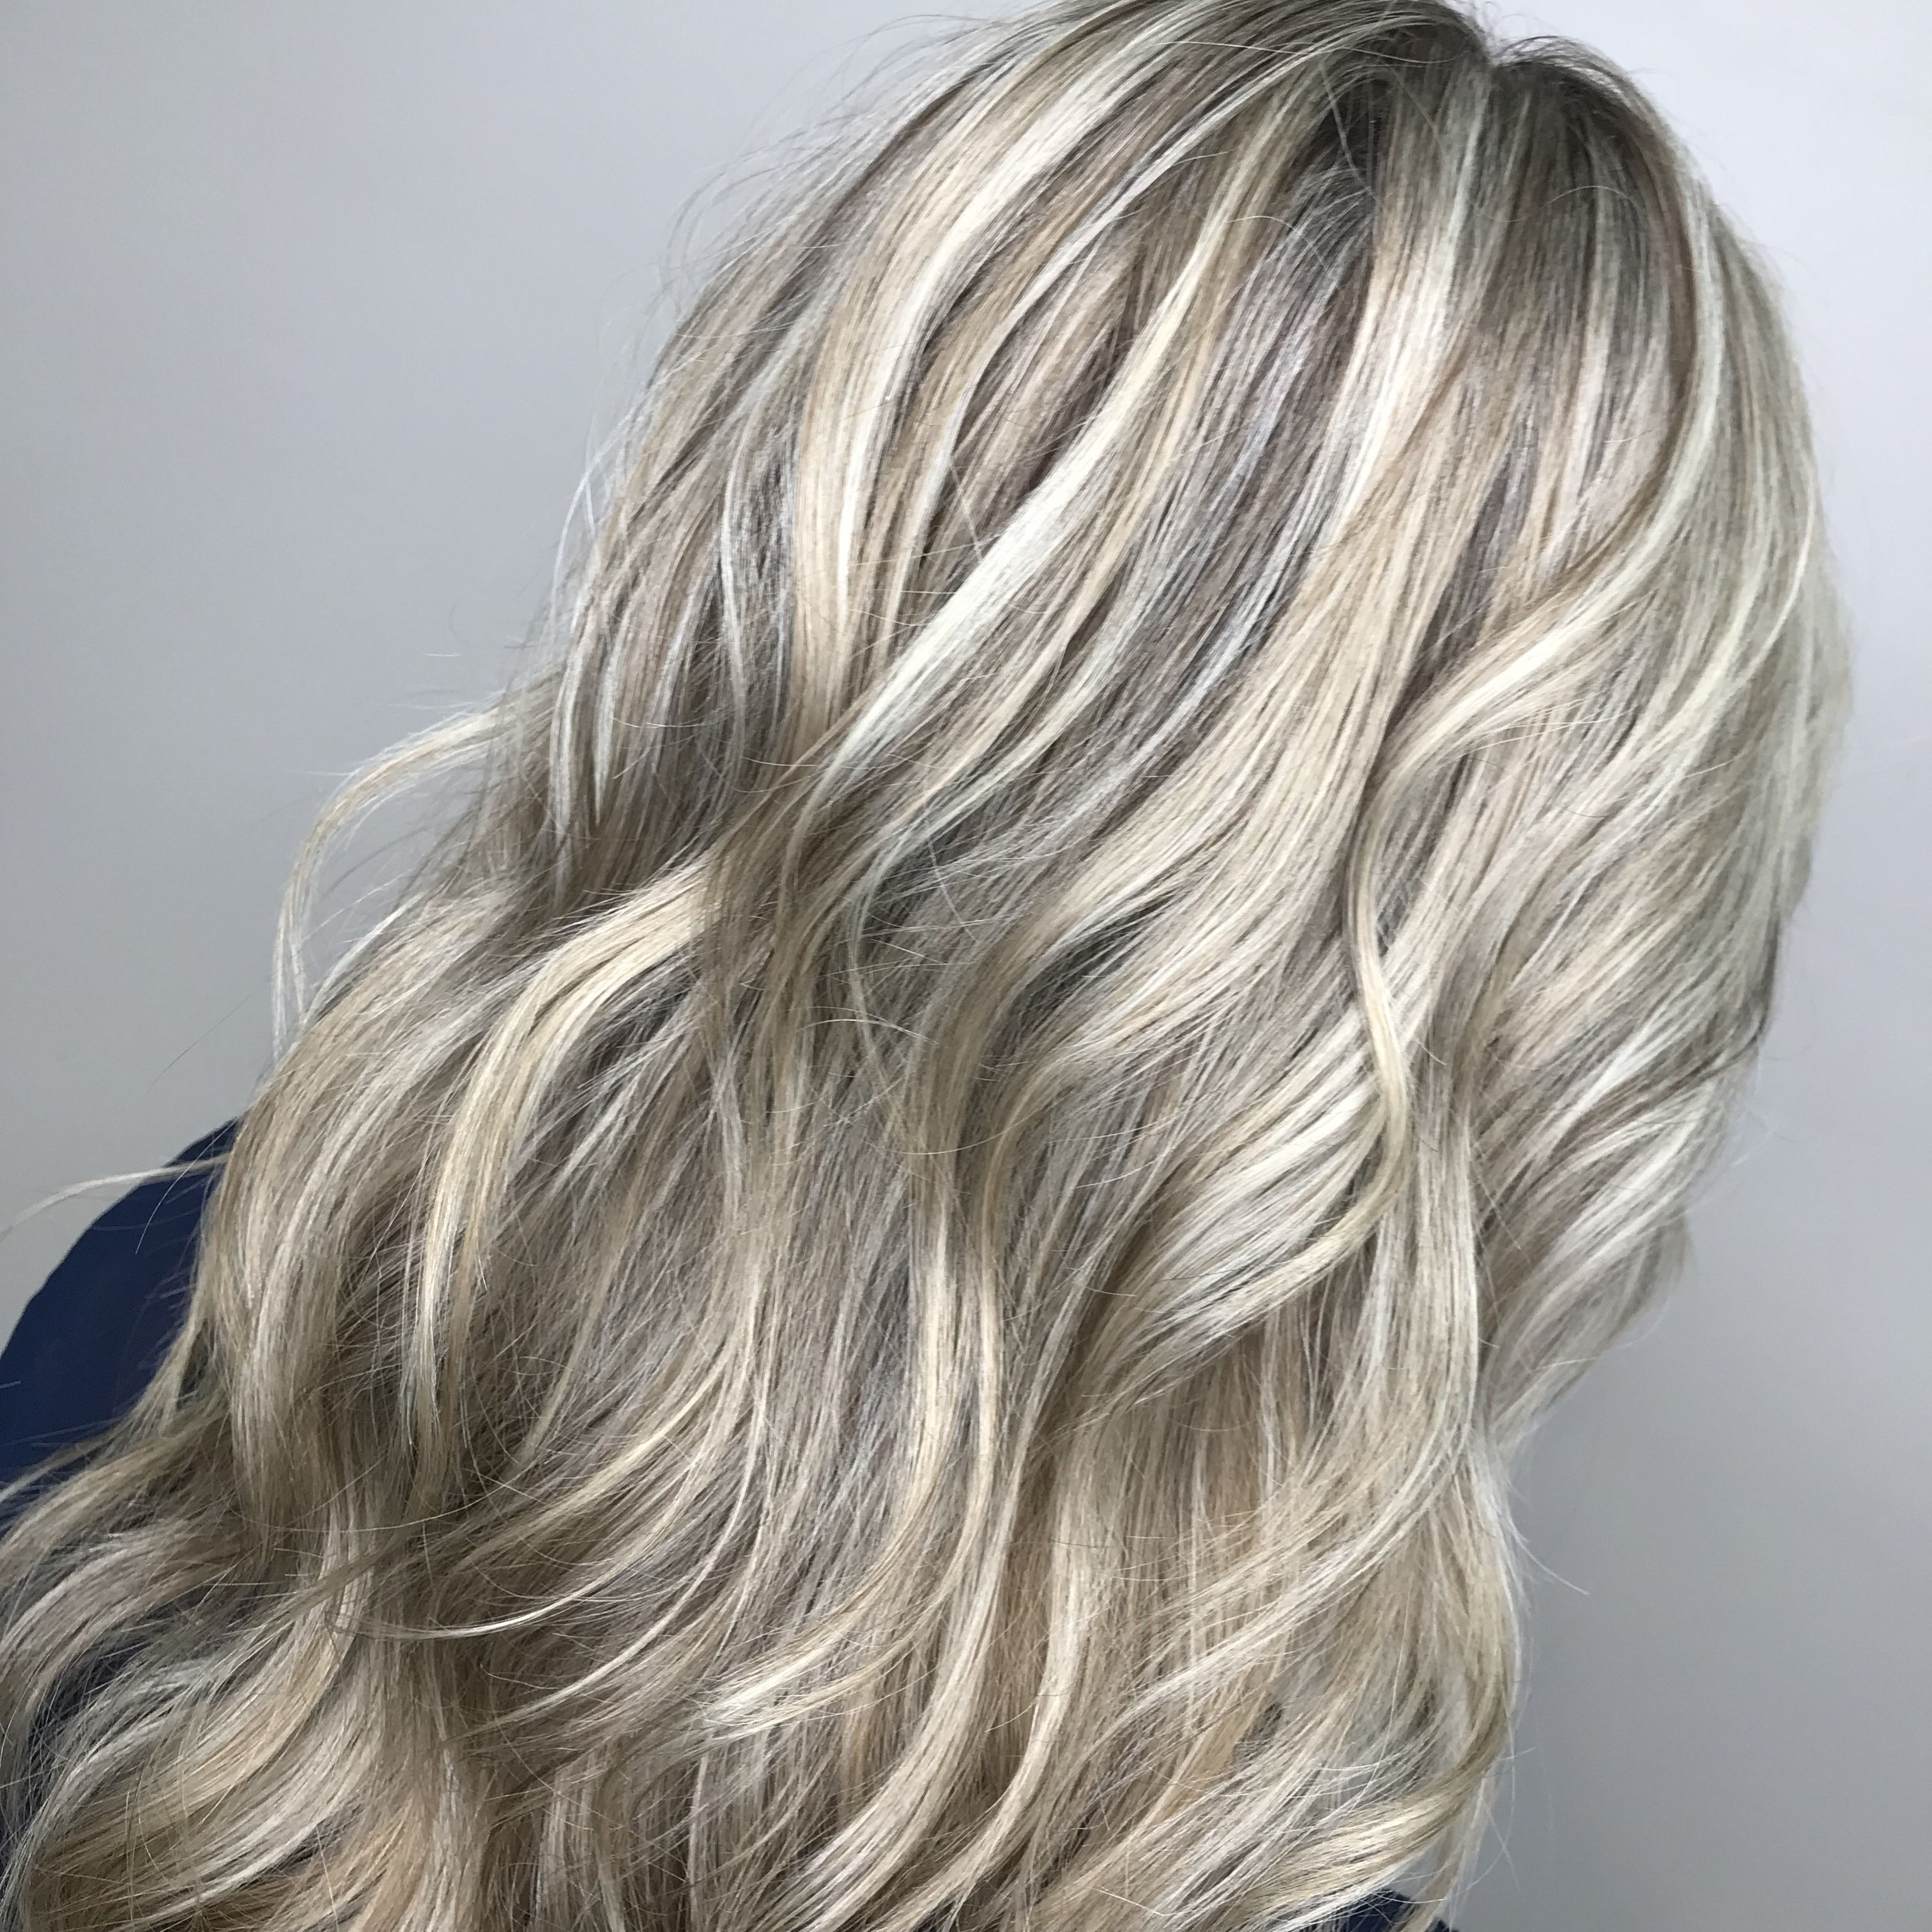 Heavy Highlights Platinum Blonde Highlights Blonde Highlights Heavy Blonde Highlights